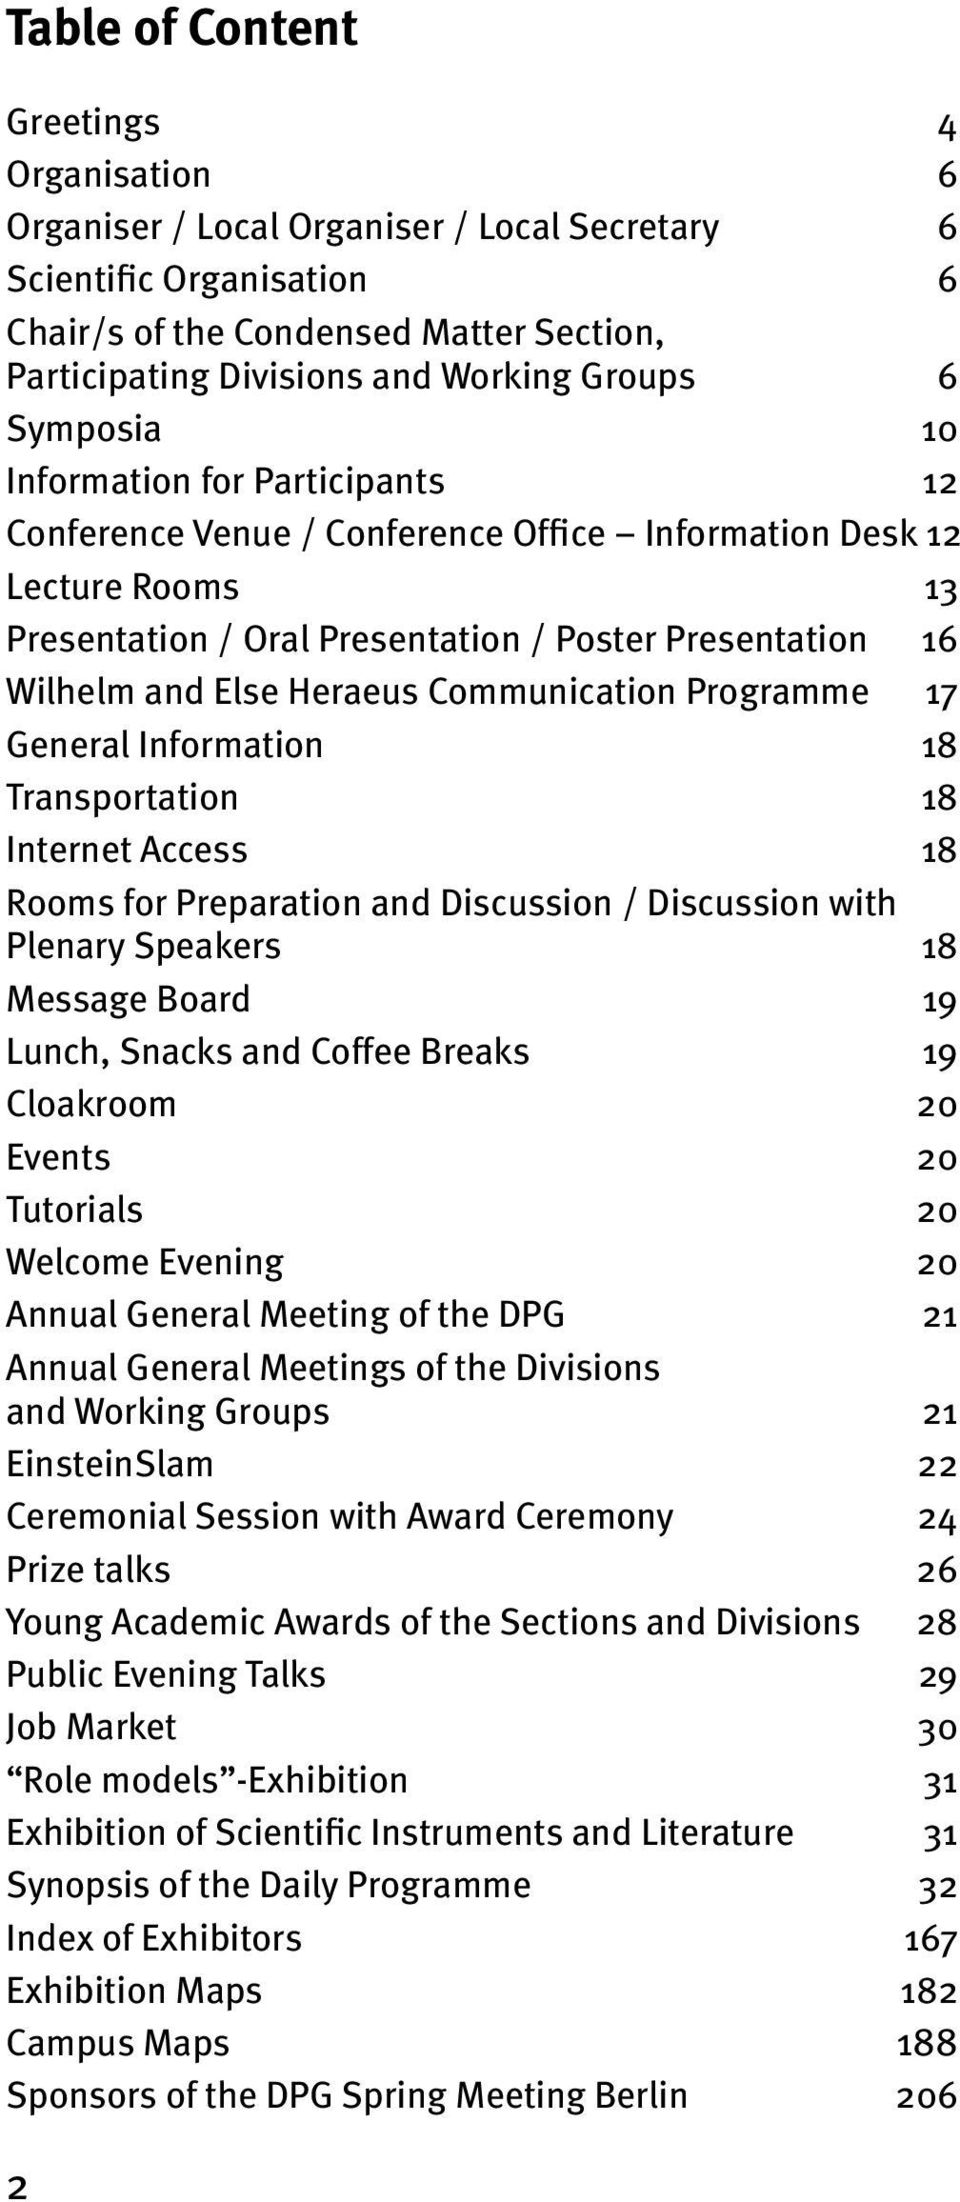 Else Heraeus Communication Programme 17 General Information 18 Transportation 18 Internet Access 18 Rooms for Preparation and Discussion / Discussion with Plenary Speakers 18 Message Board 19 Lunch,